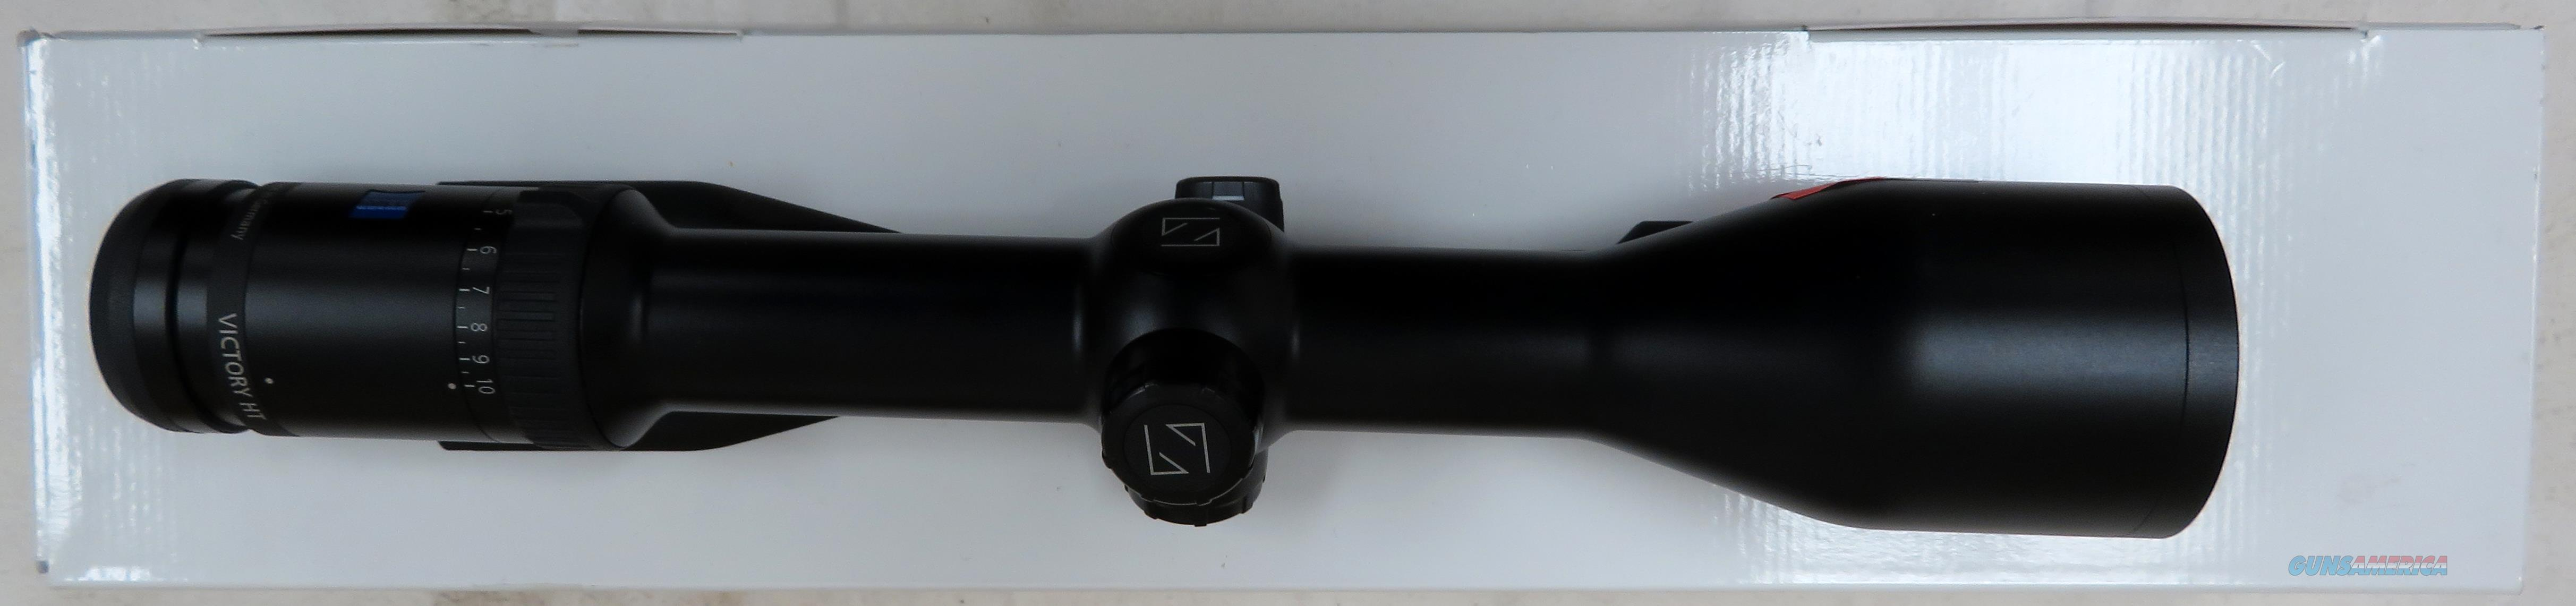 SALE!!! ZEISS VICTORY HT 2.5-10X50 WITH RETICLE #06  Non-Guns > Scopes/Mounts/Rings & Optics > Rifle Scopes > Variable Focal Length